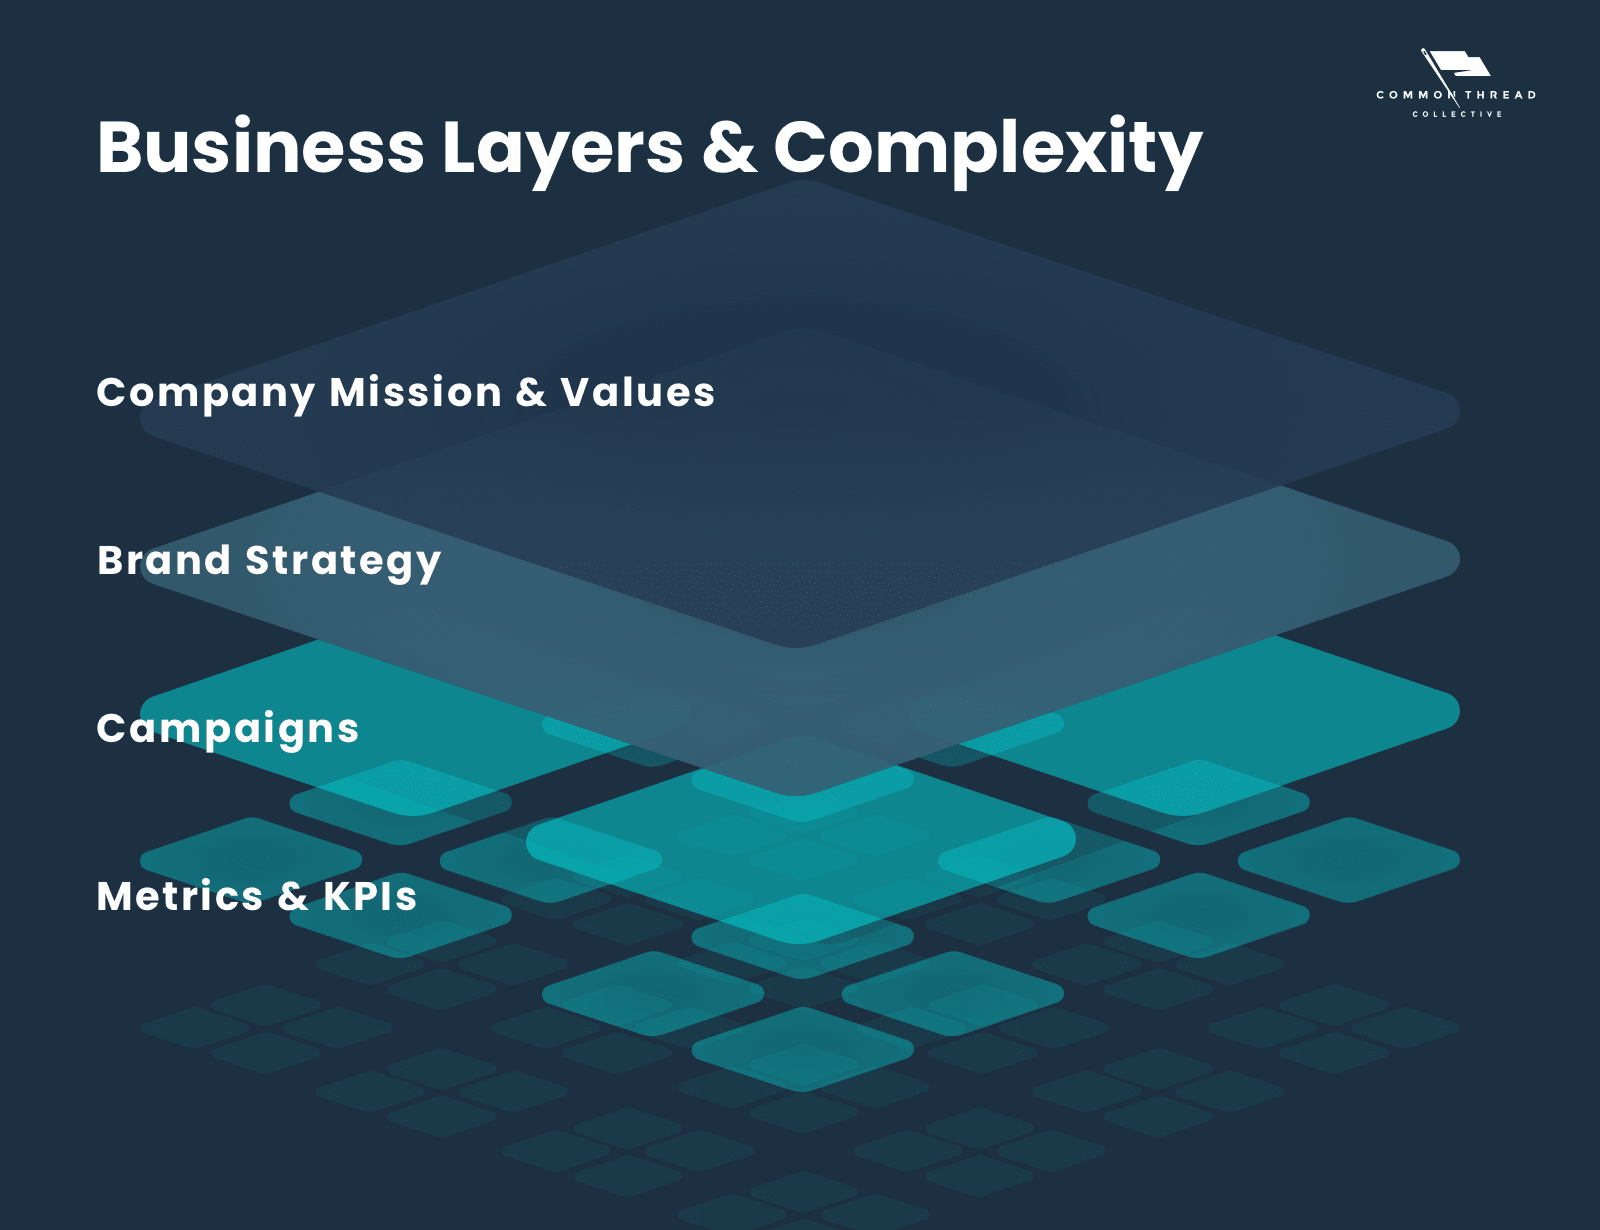 business layers and operational complexity; from company mission and values down to metrics and KPIs